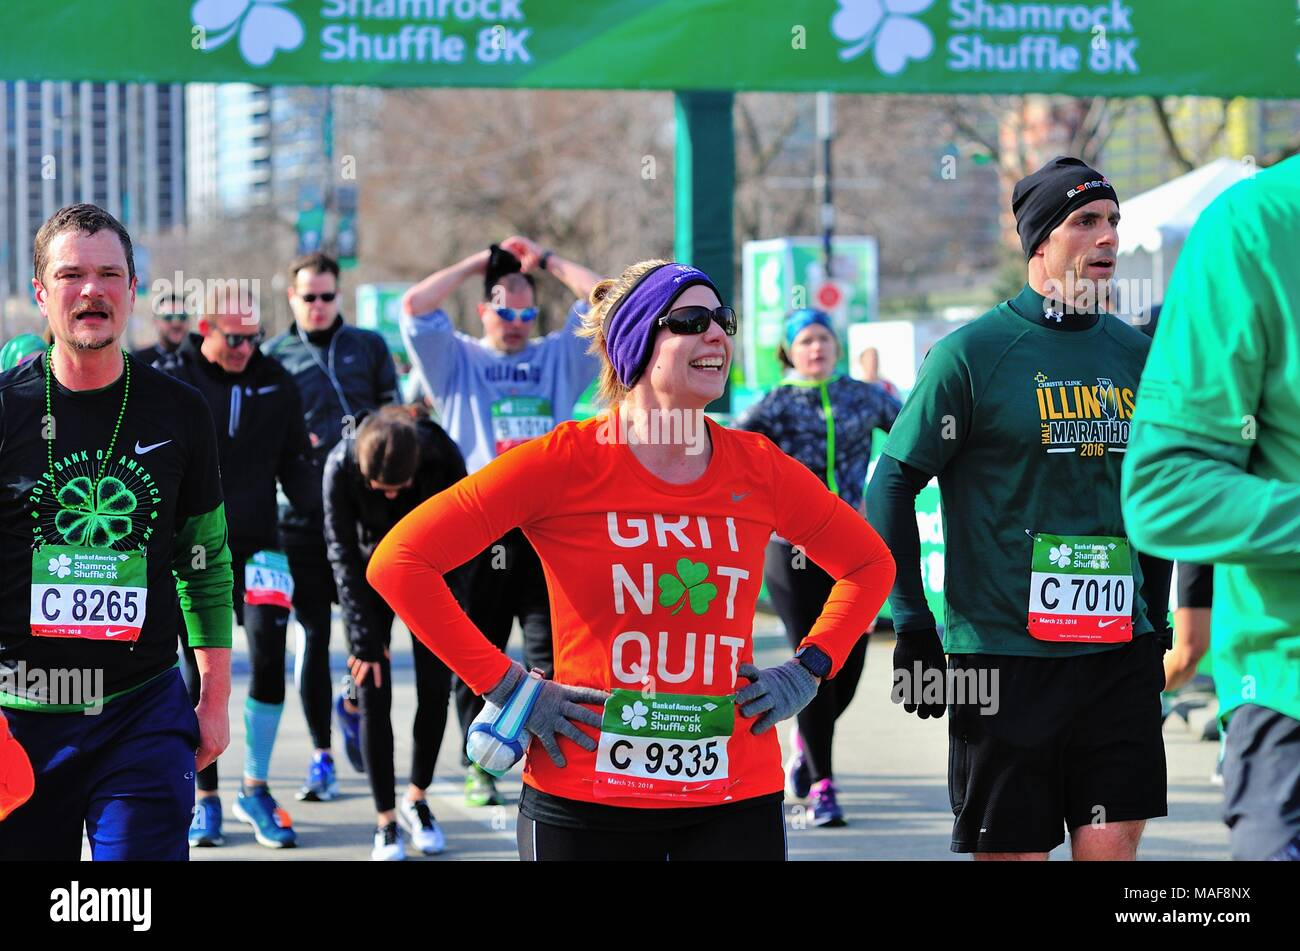 Chicago, Illinois, USA. A happy face among pain and fatigue appears just past the finish line at the 2018 Shamrock Shuffle race in Chicago. - Stock Image